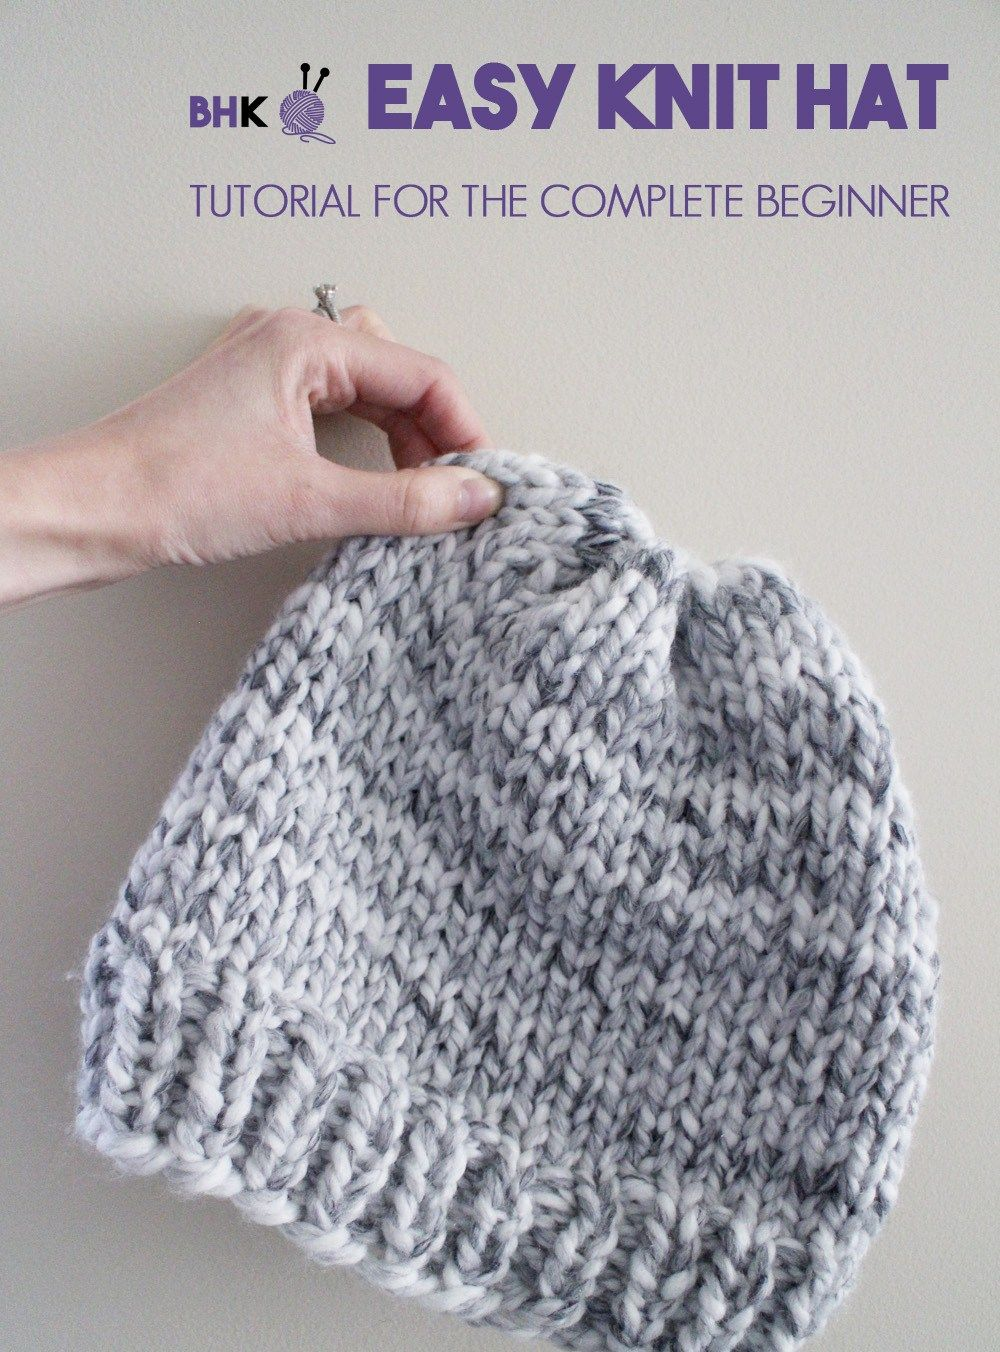 Easy knit hat knit hats crochet and circular needles easy knit hat bankloansurffo Images